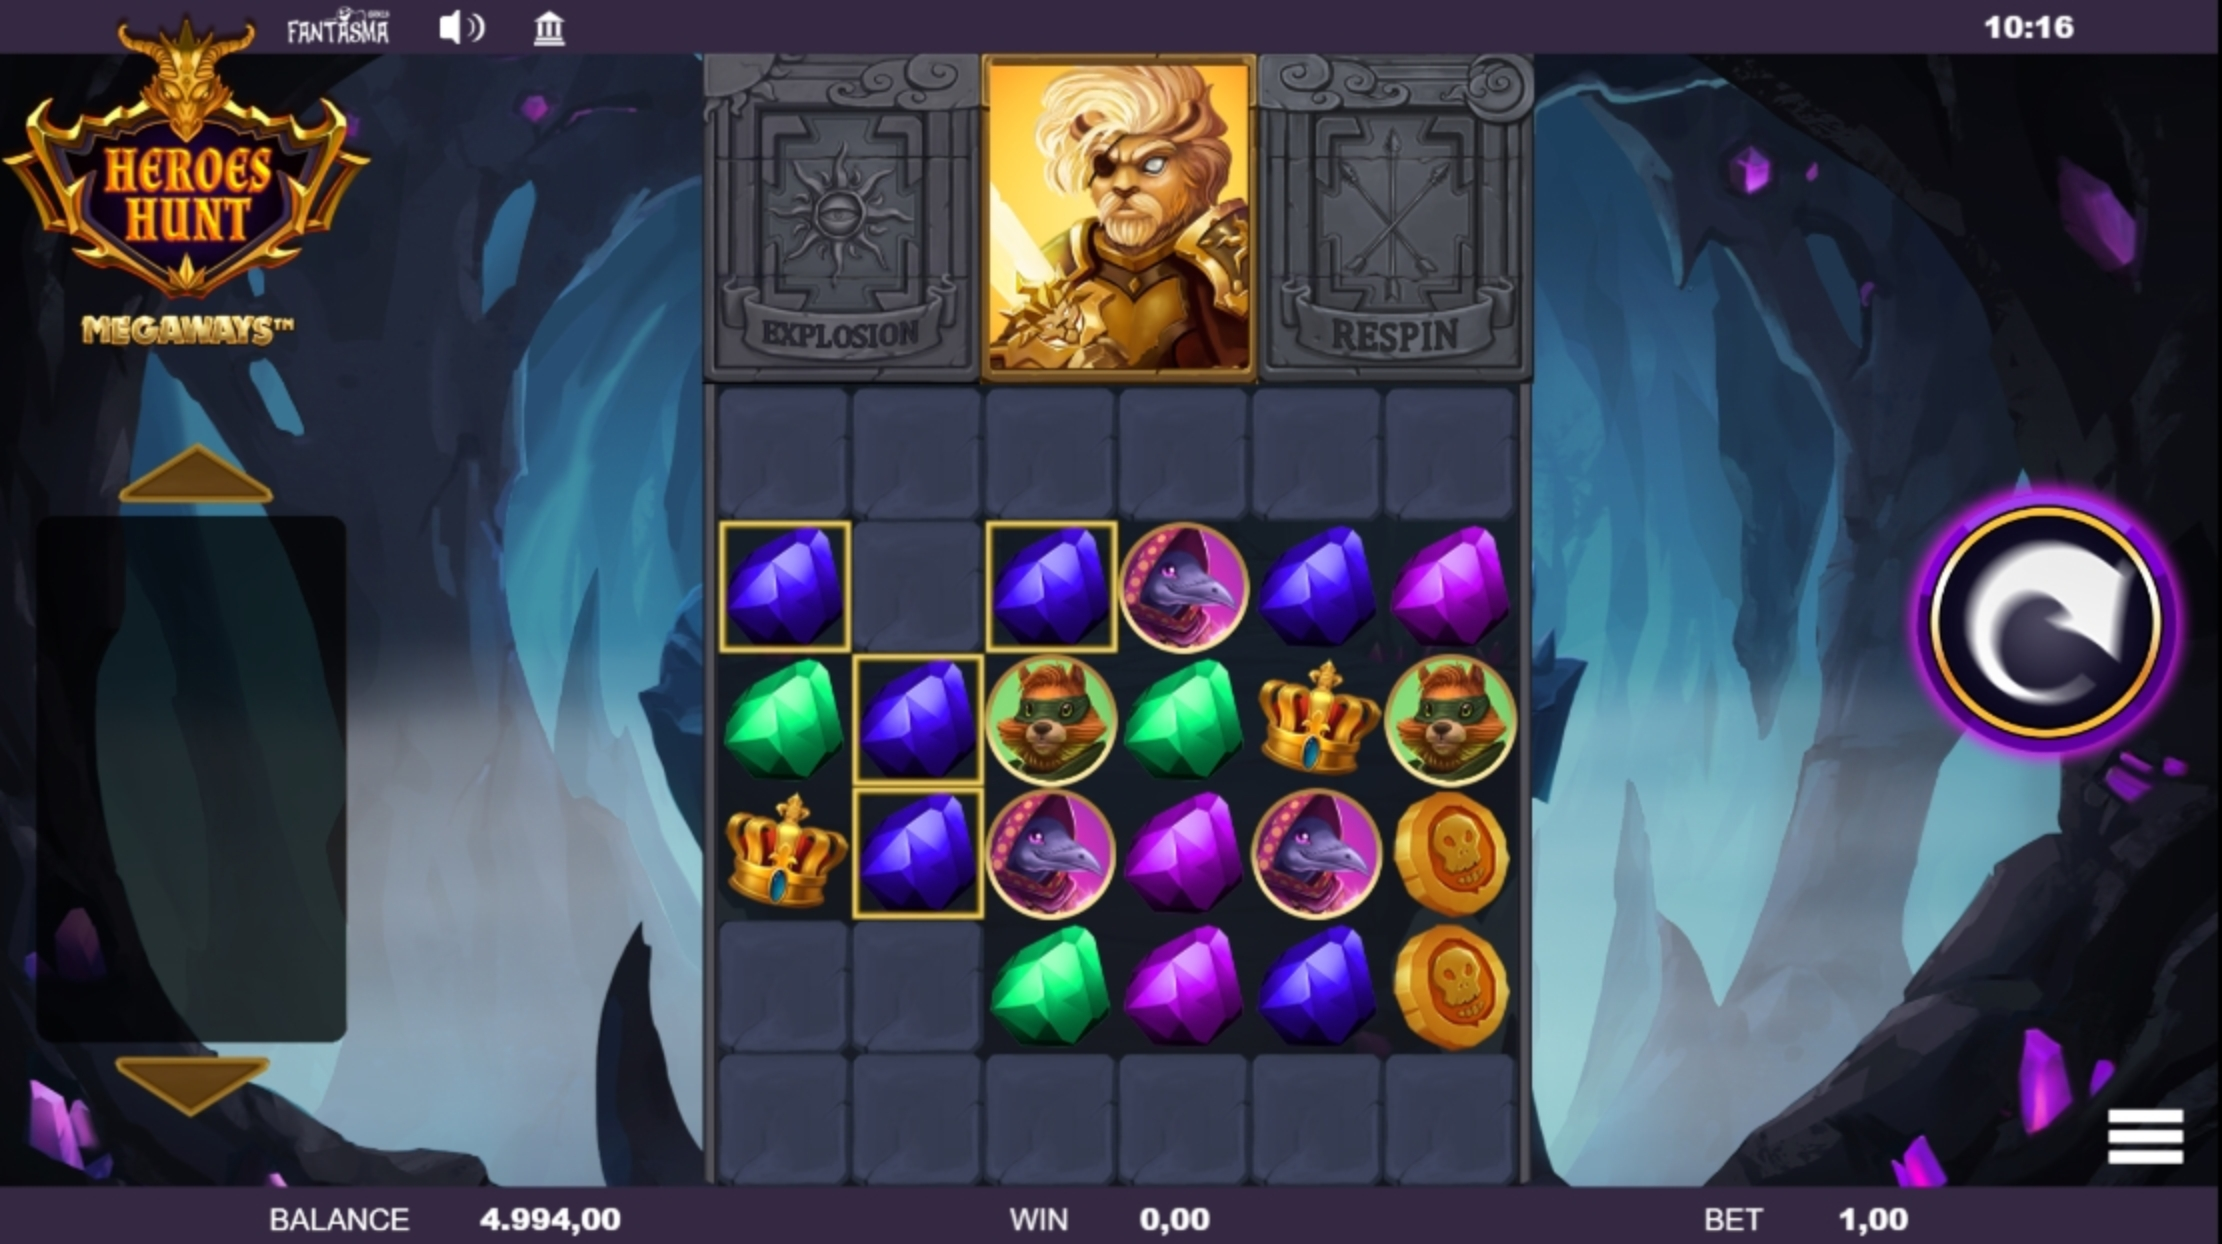 Win Money in Heroes Hunt Megaways Free Slot Game by Fantasma Games